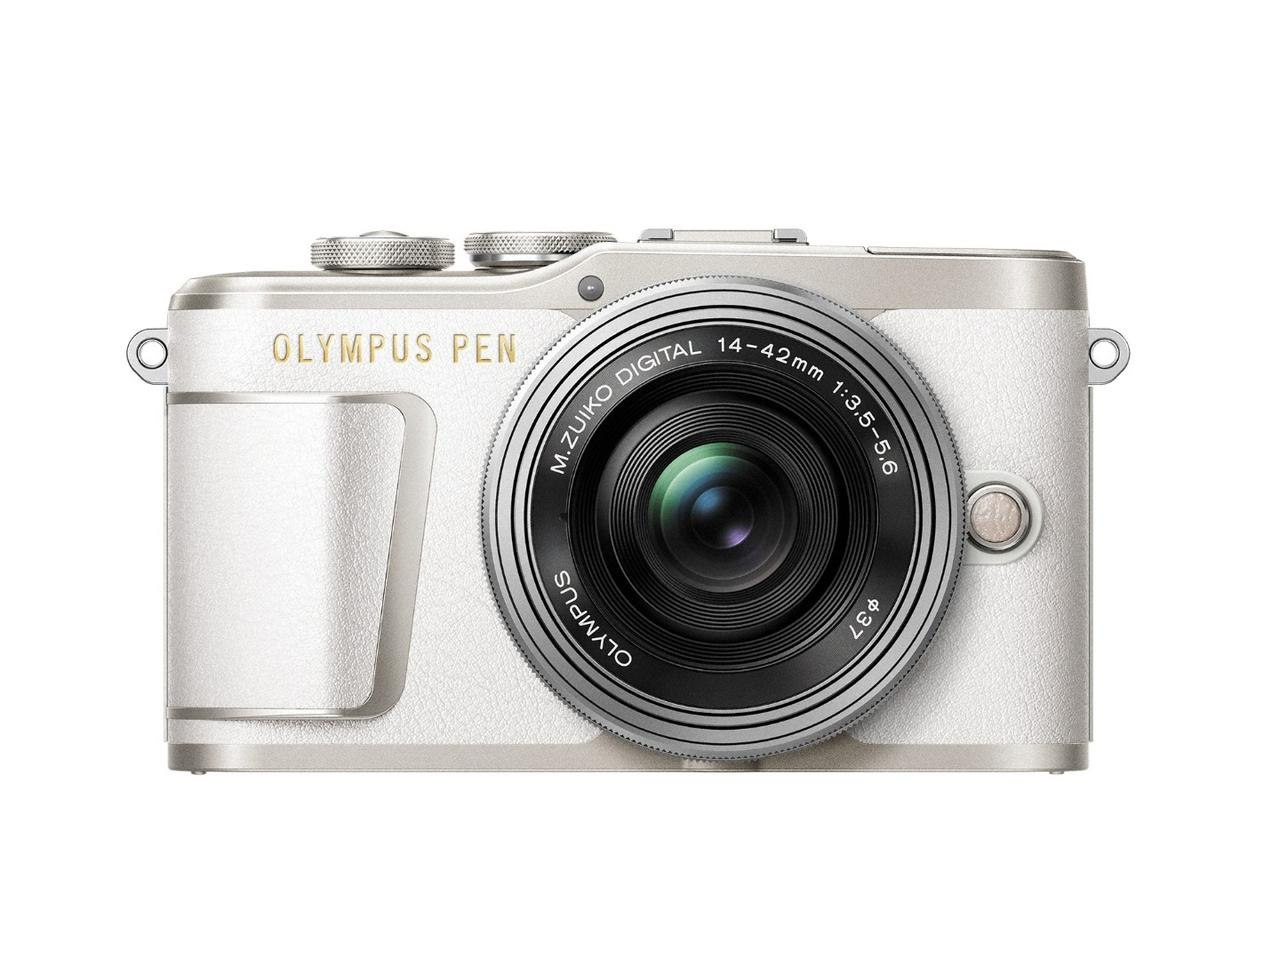 The Olympus PEN E-PL9 has been treated to a new grip design for improved ergonomics